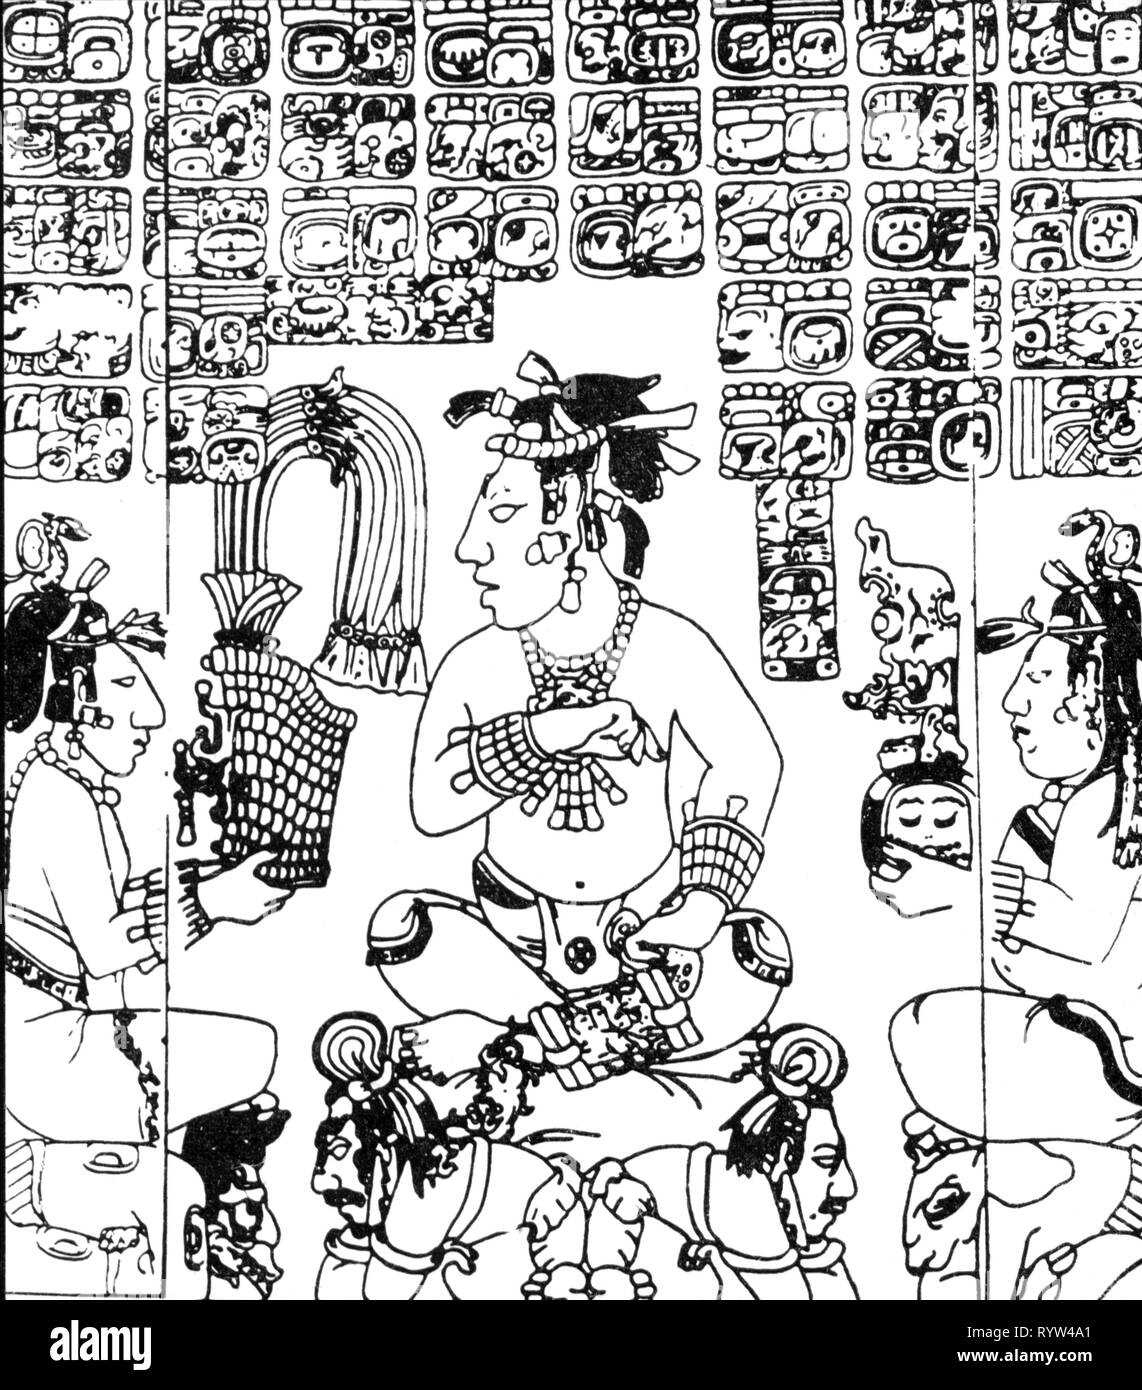 slavery, Maya, high dignitary and slaves, based on relief, Palenque, Mexico, circa 7th century, writing, script, scripts, South America, America, Mayan culture, pictography, slaveholder, slave owner, slaver, slaveholders, slave owners, slavers, character, characters, inscription, epigraphs, inscriptions, crown, crowns, Precolumbian, pre Colombian, people, slavery, slaveries, high, highly, dignitary, dignitaries, slaves, slave, historic, historical, Artist's Copyright has not to be cleared - Stock Image